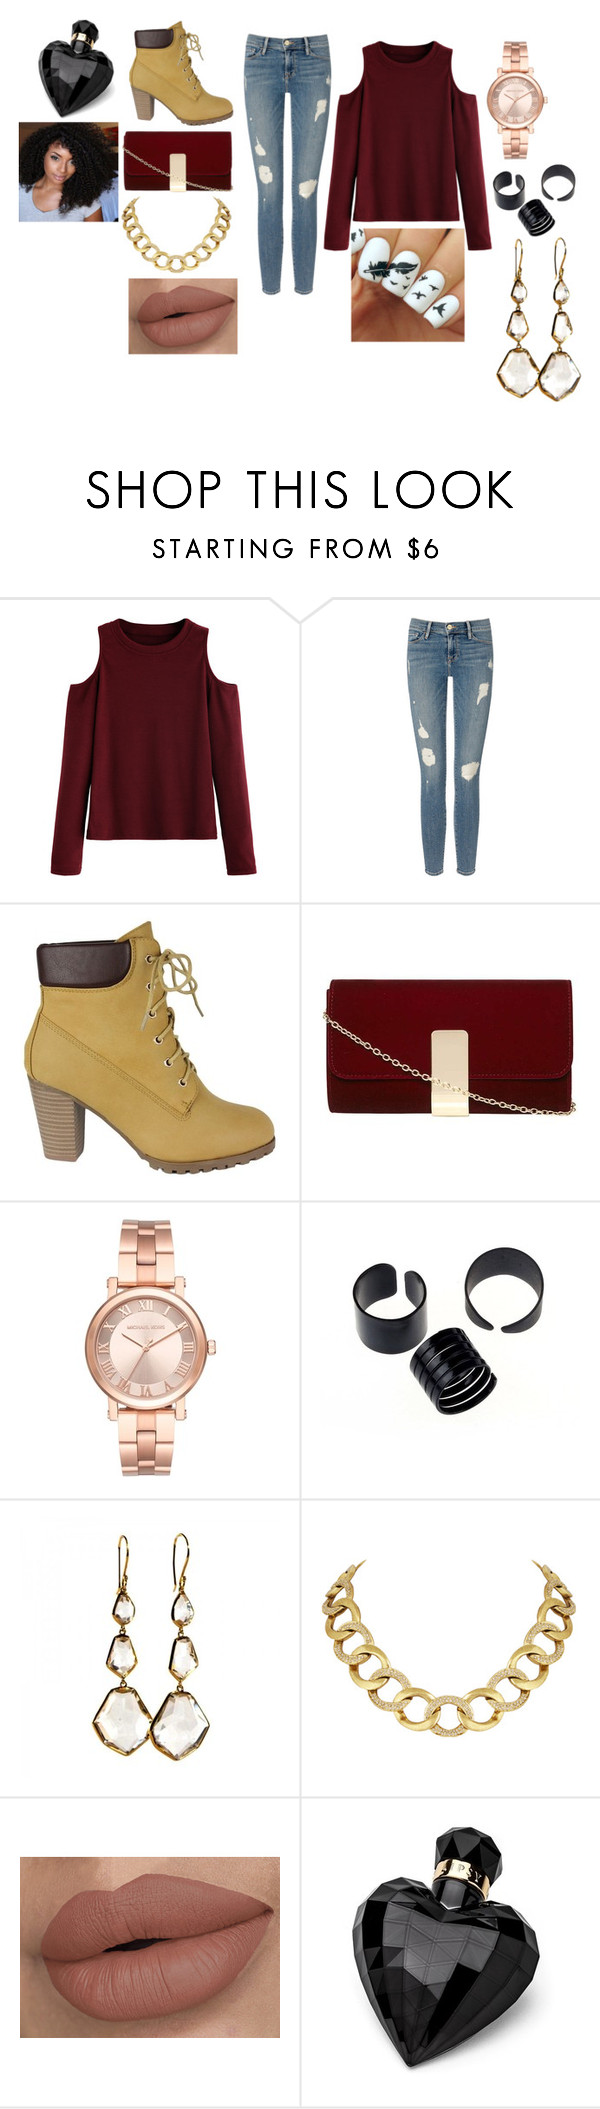 """""""Red Sweater"""" by itsjazzmen ❤ liked on Polyvore featuring Frame Denim, Dorothy Perkins, Michael Kors, Ippolita, House of Harlow 1960 and Lipsy"""